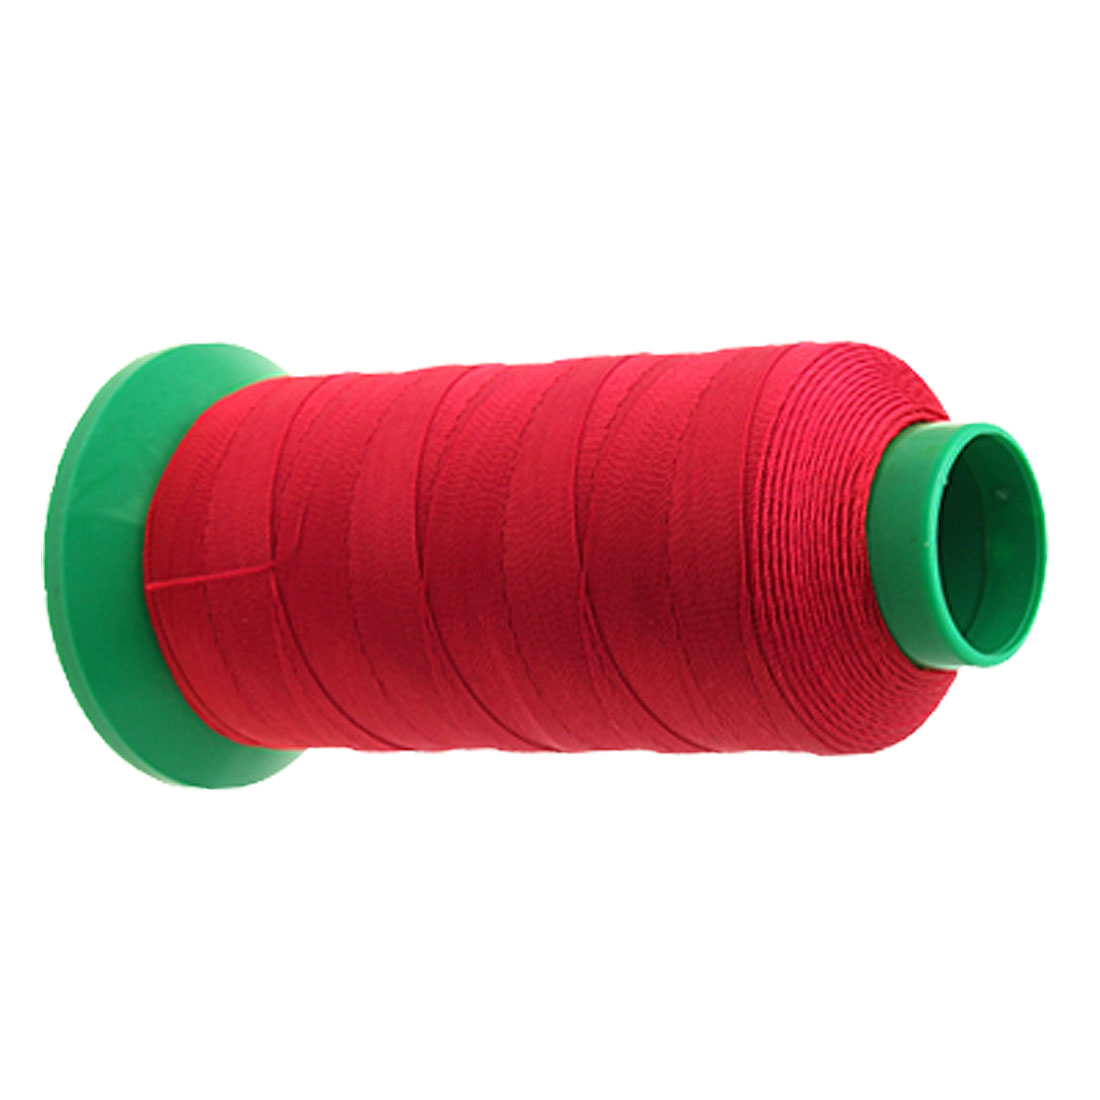 300m Sewing Thread Tailoring String Line Red